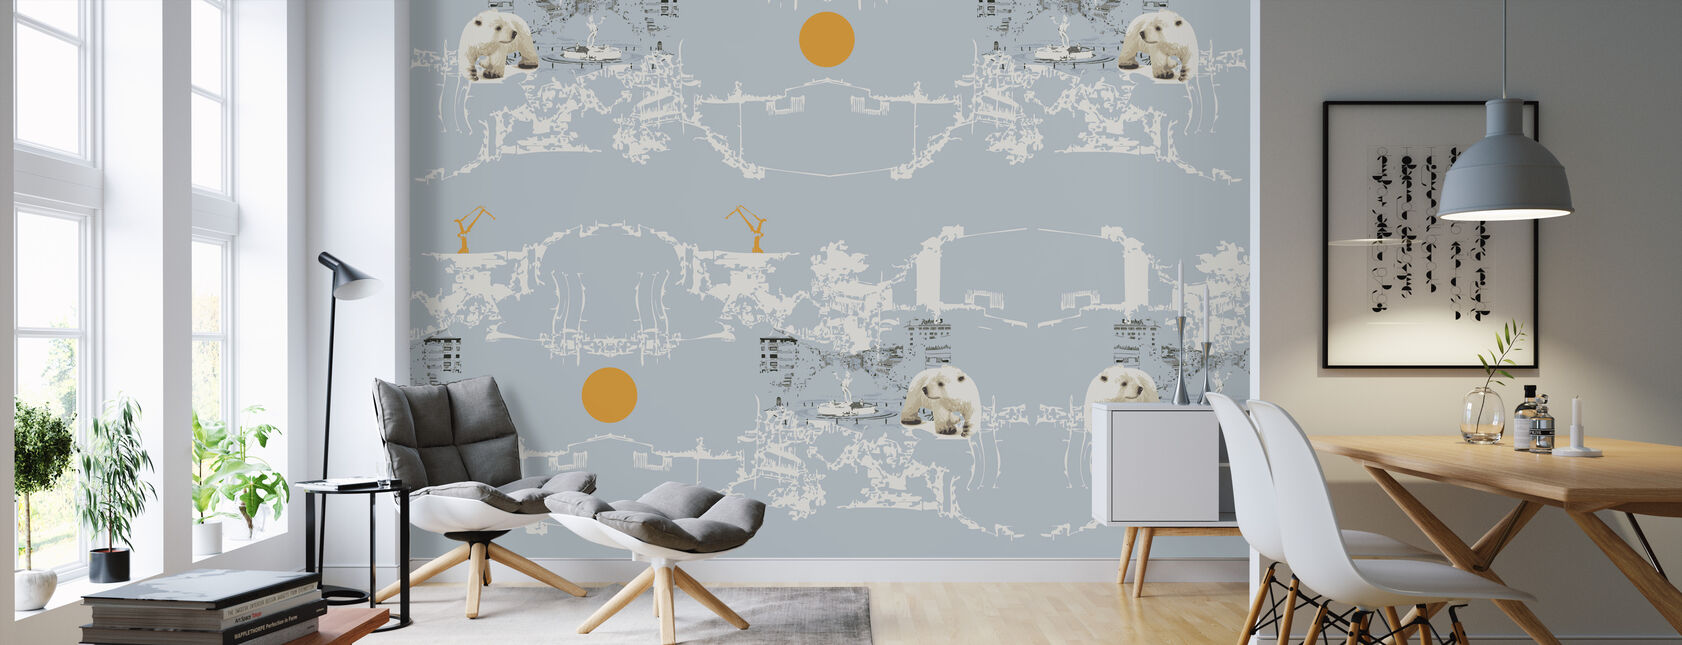 Polar Bear - Wallpaper - Living Room